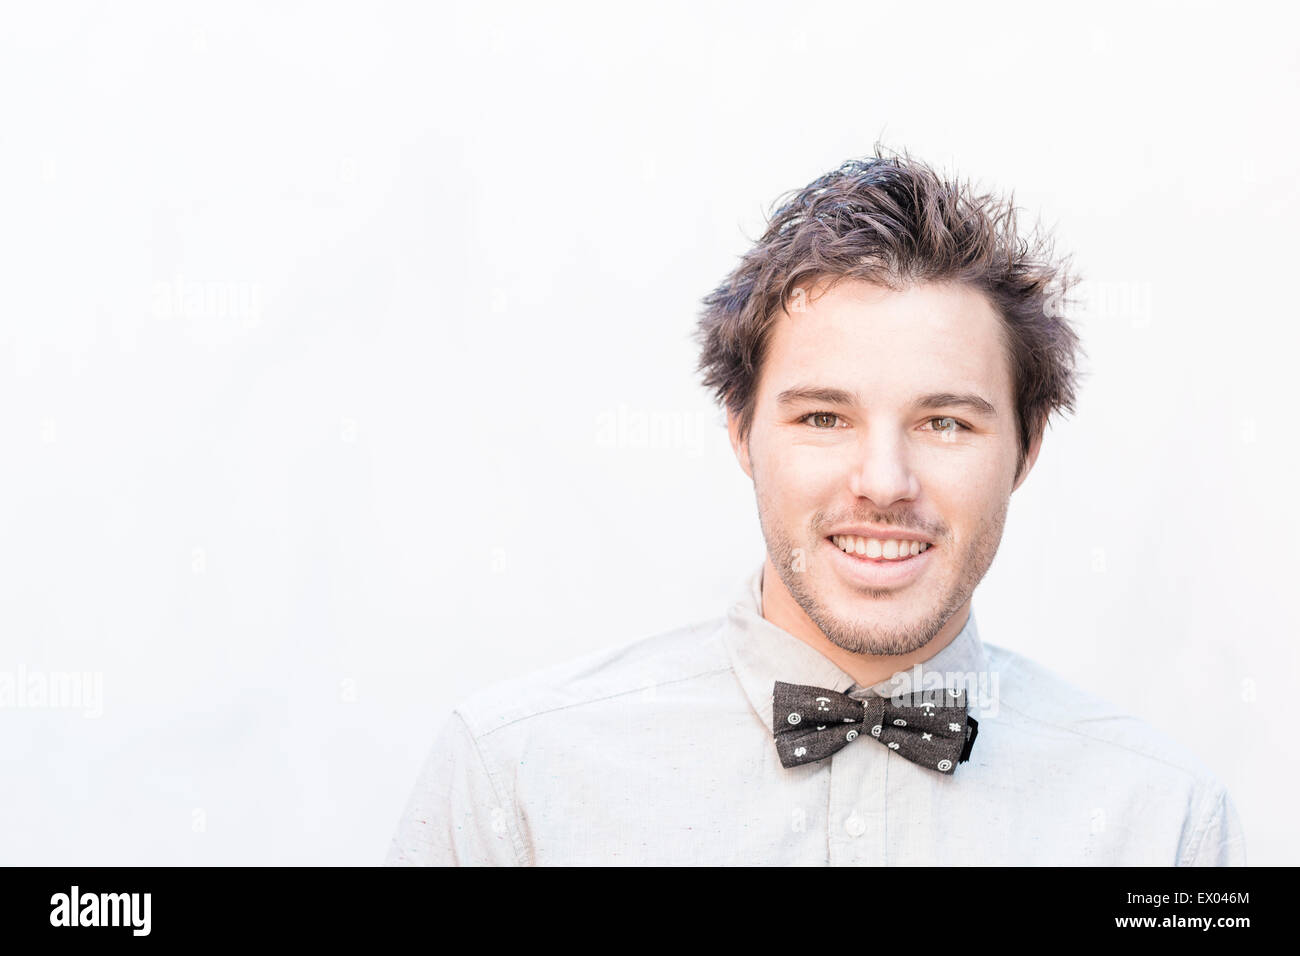 Portrait of young man wearing bow tie - Stock Image